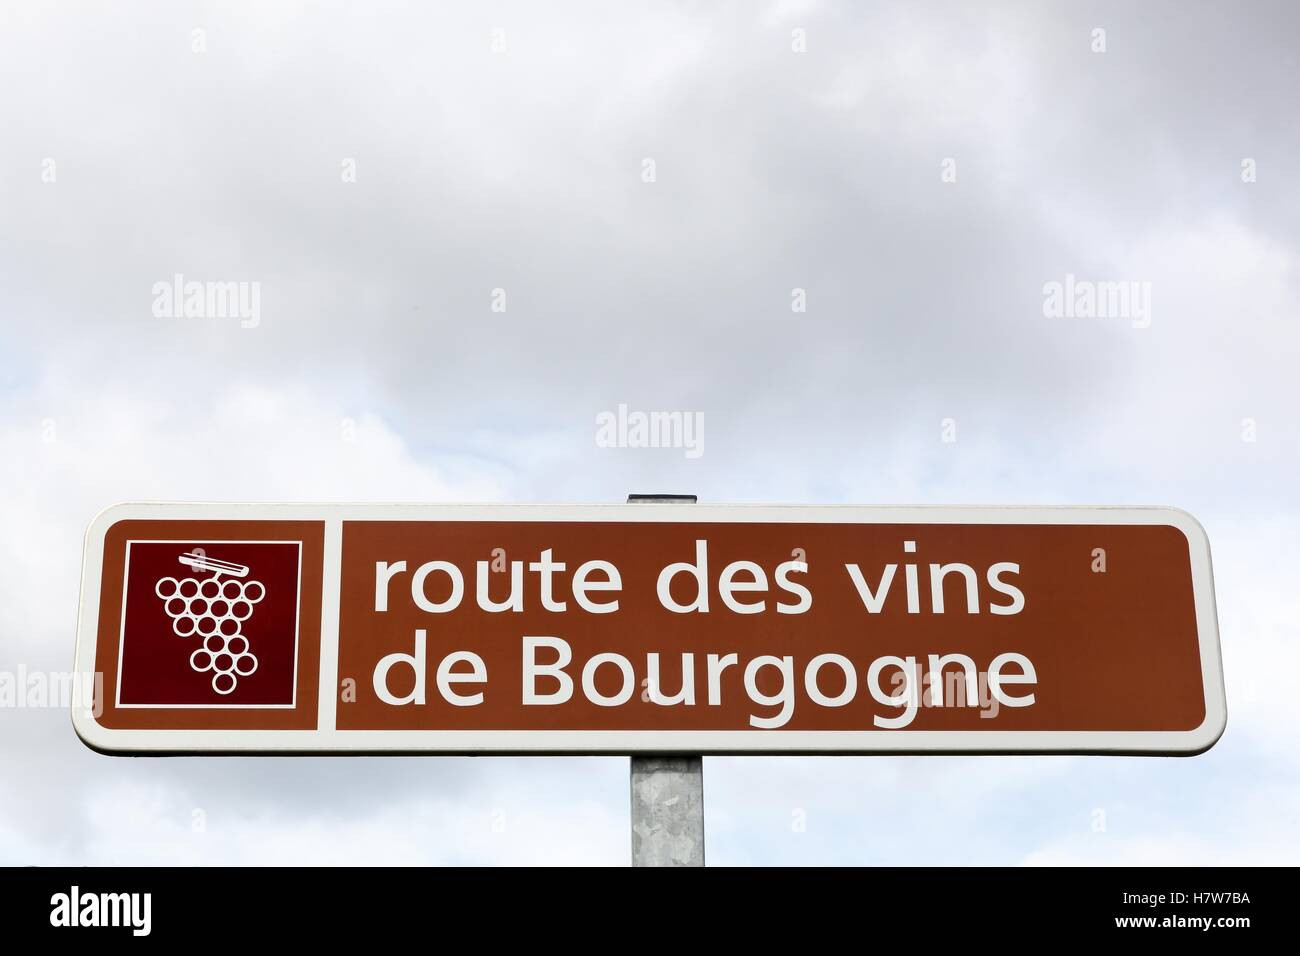 Road of Bourgogne wine sign, France - Stock Image